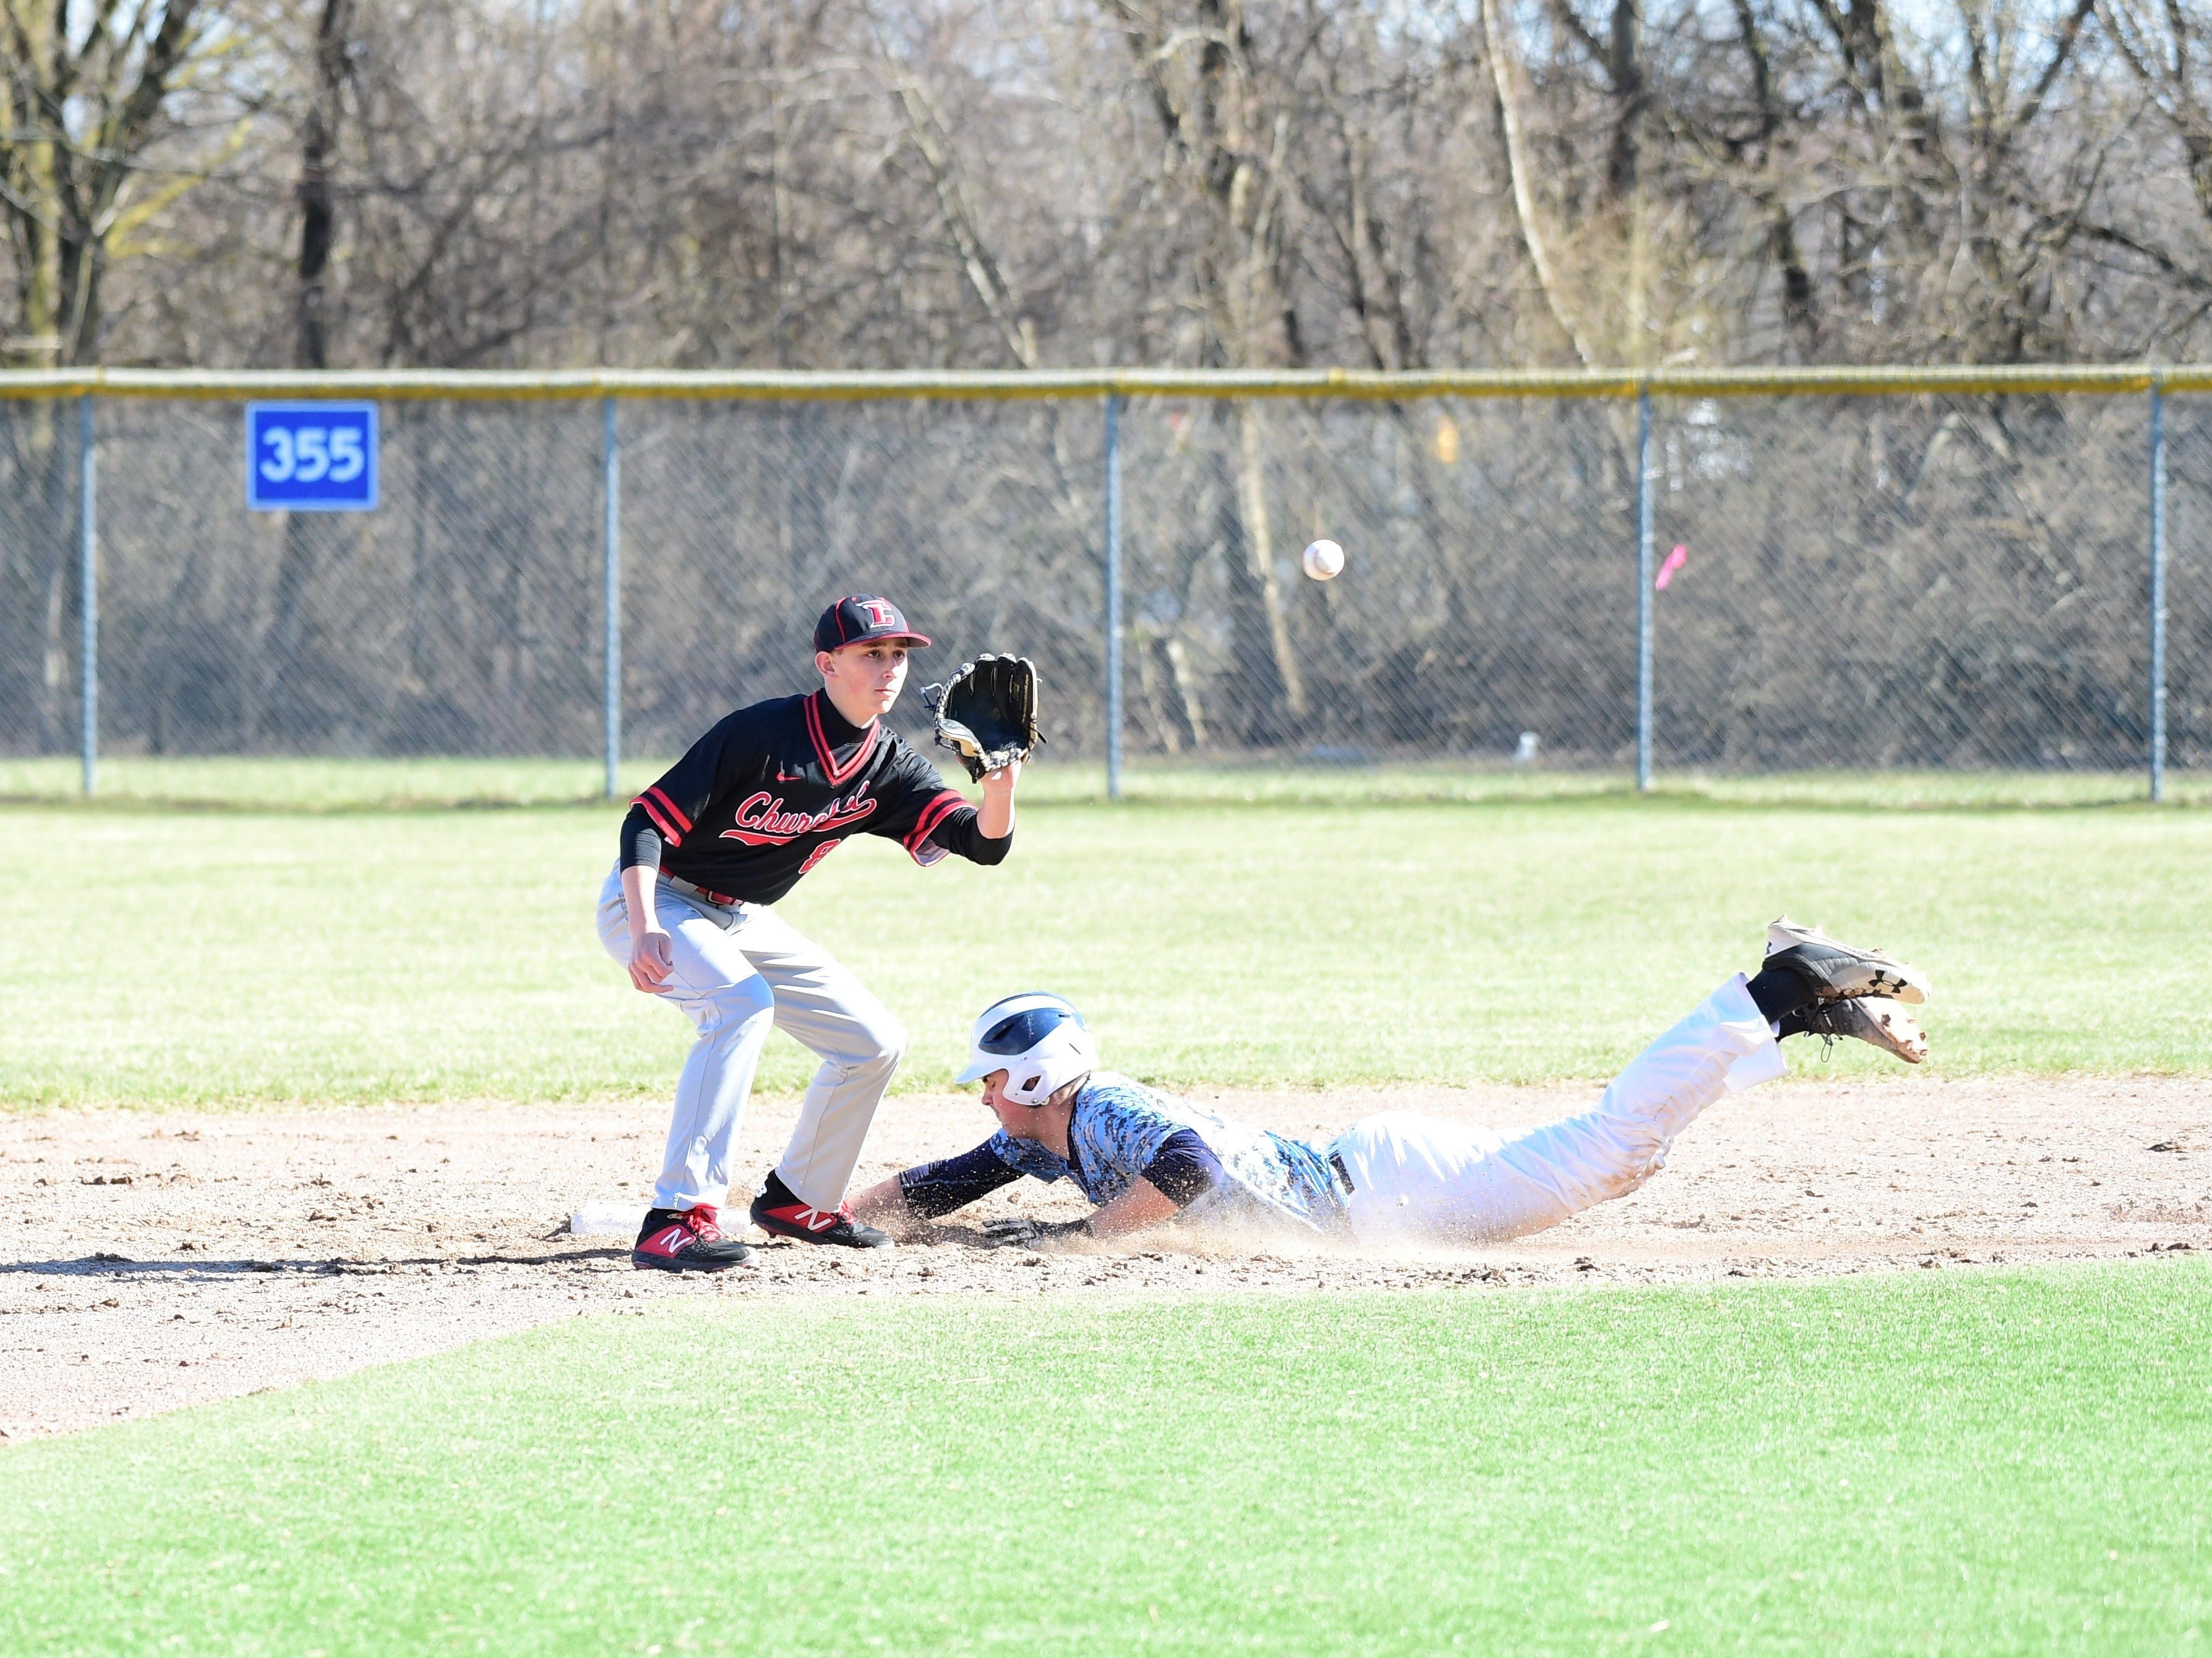 Livonia Churchill's Ryan Kennell goes to tag Stevenson's Nate Waligora in a game on April 15, 2019.